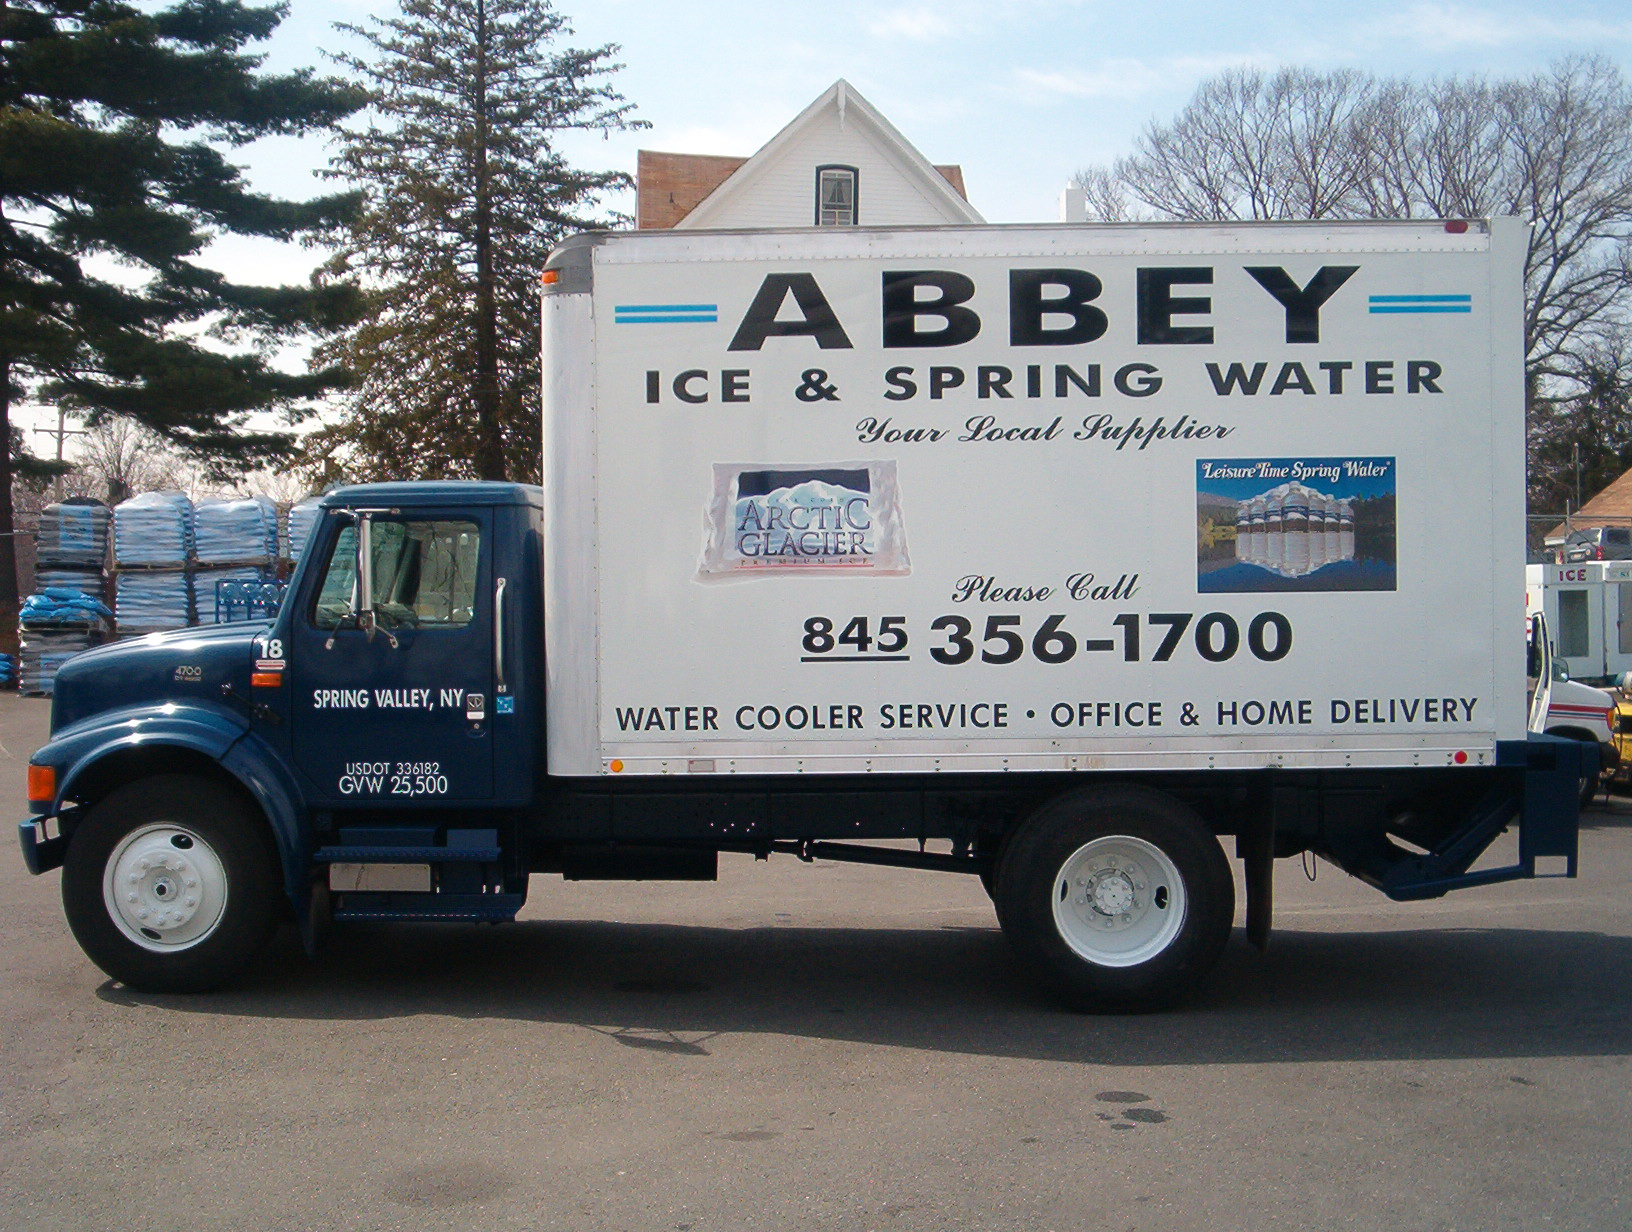 Abbey Ice & Spring Water